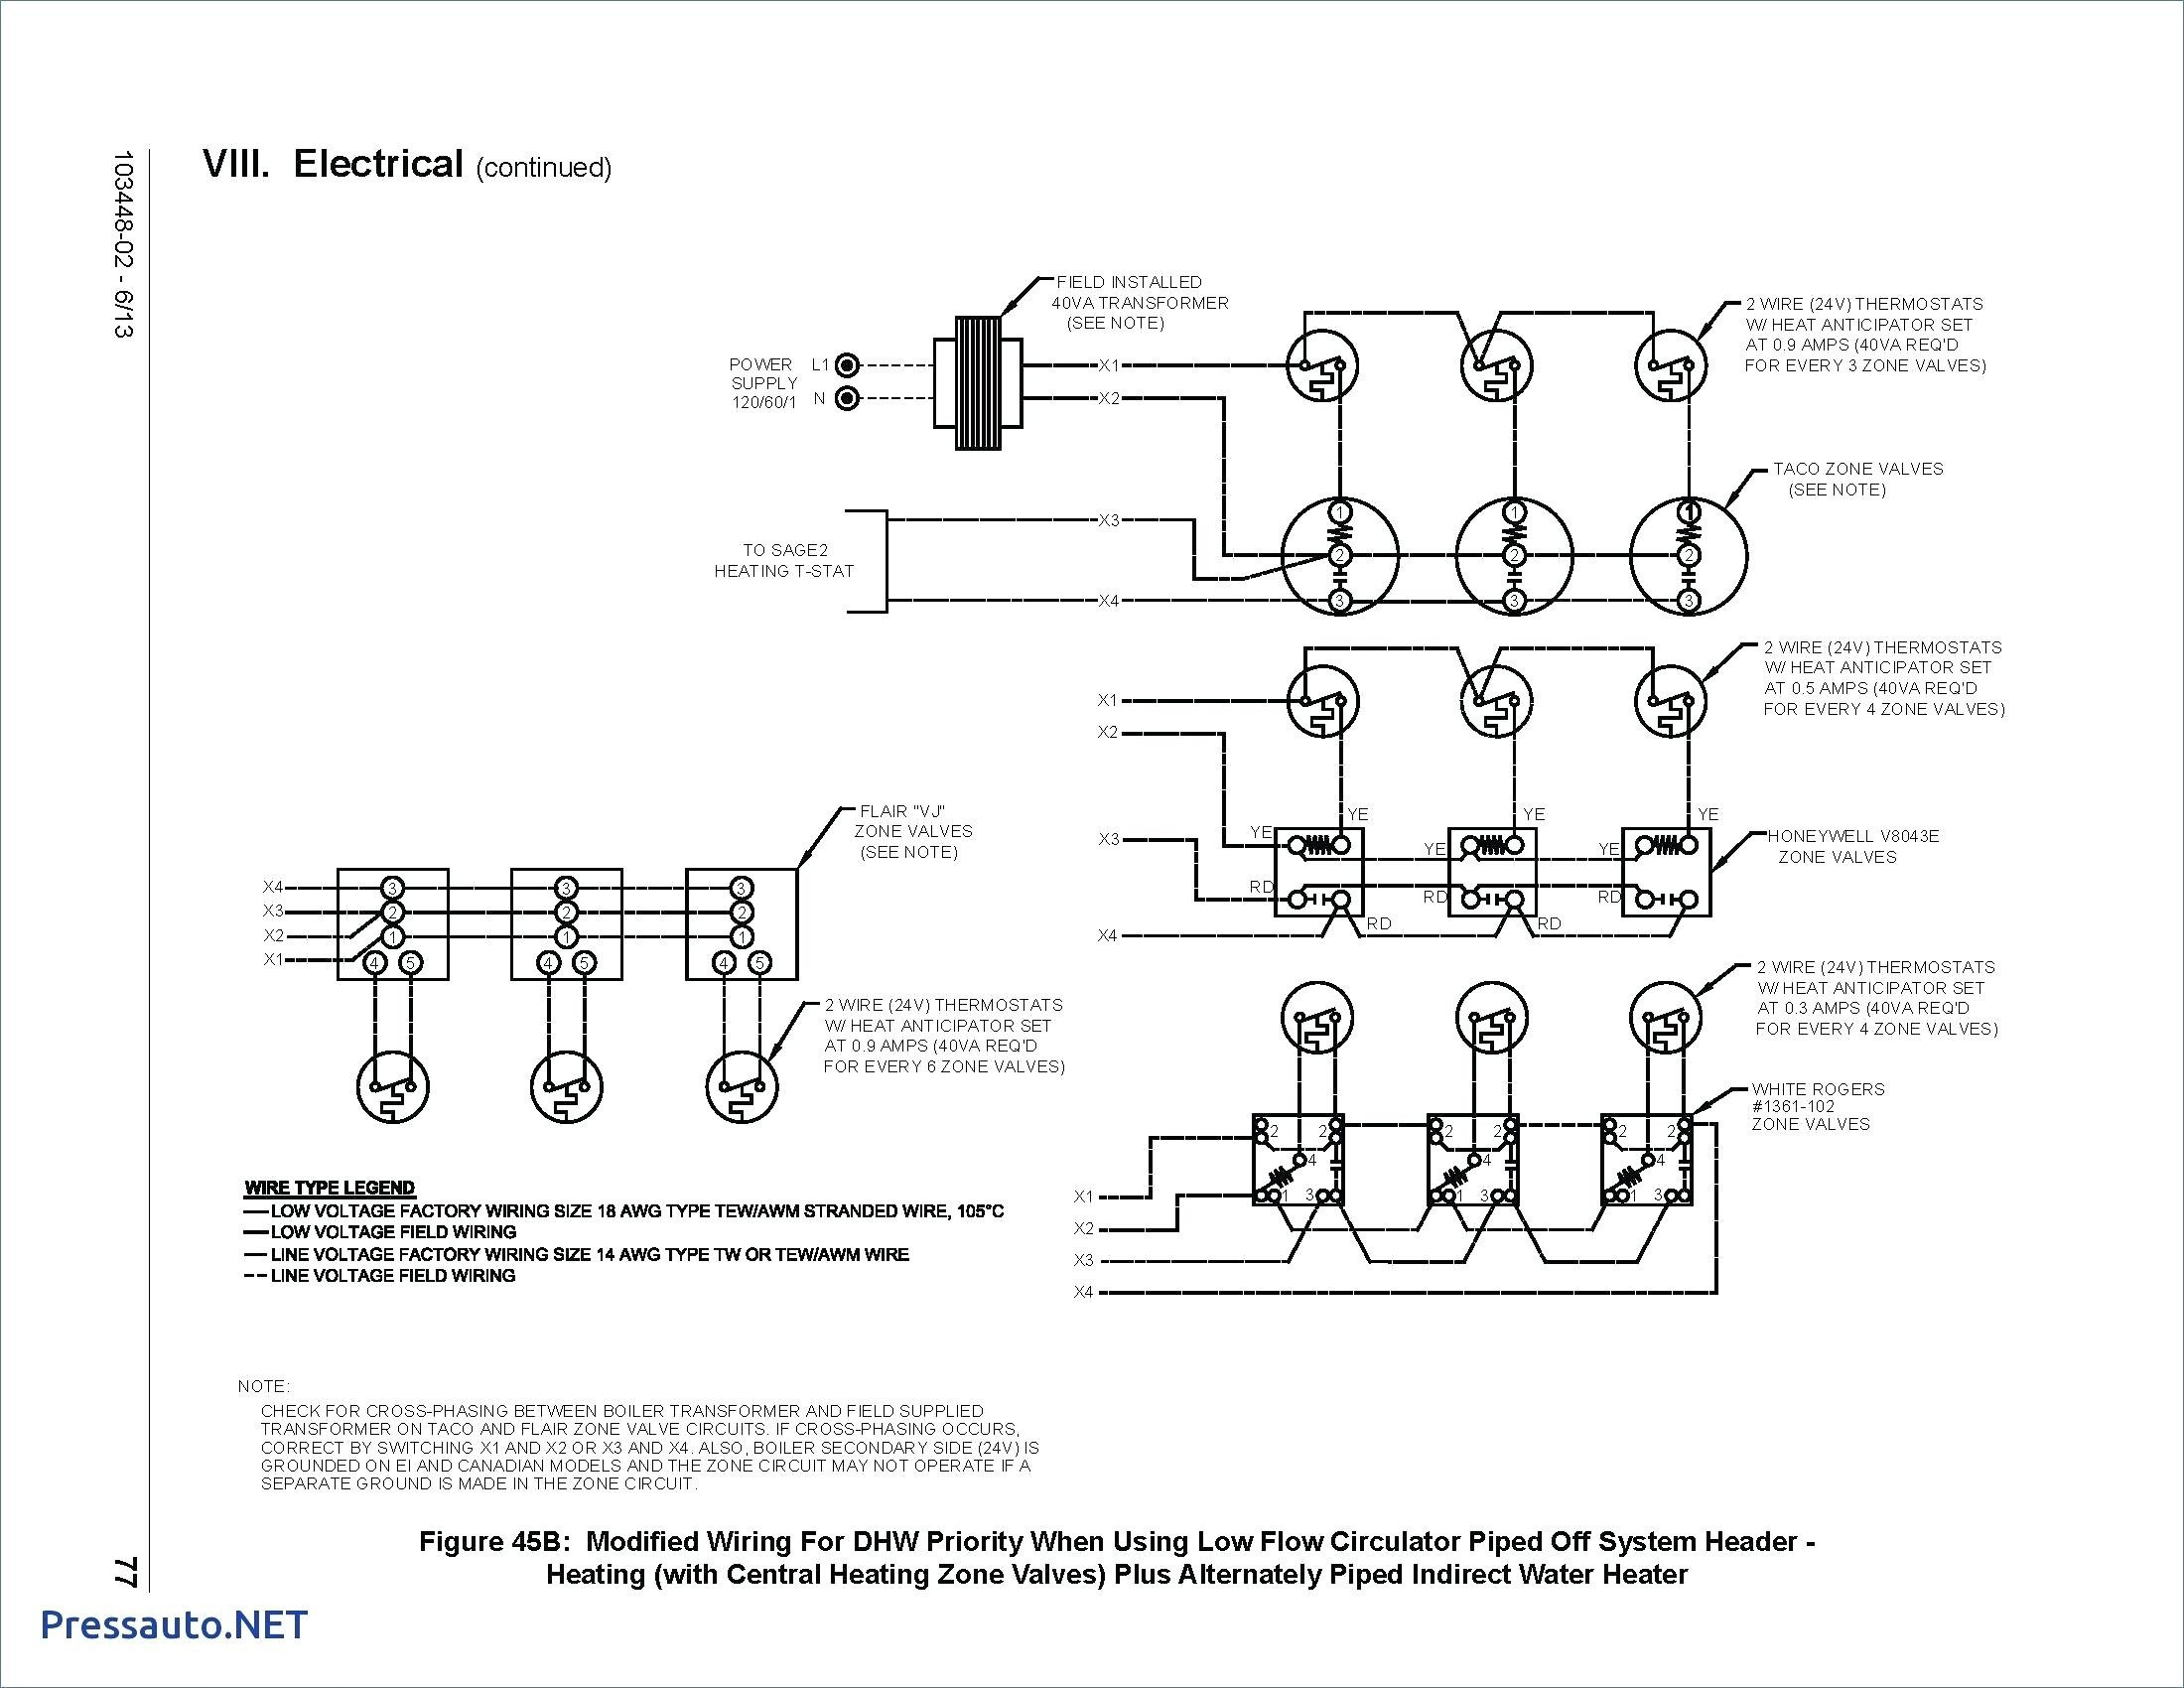 Taco Zone Valve Wiring Diagram Likewise 3 Wire Zone Valve Thermostat